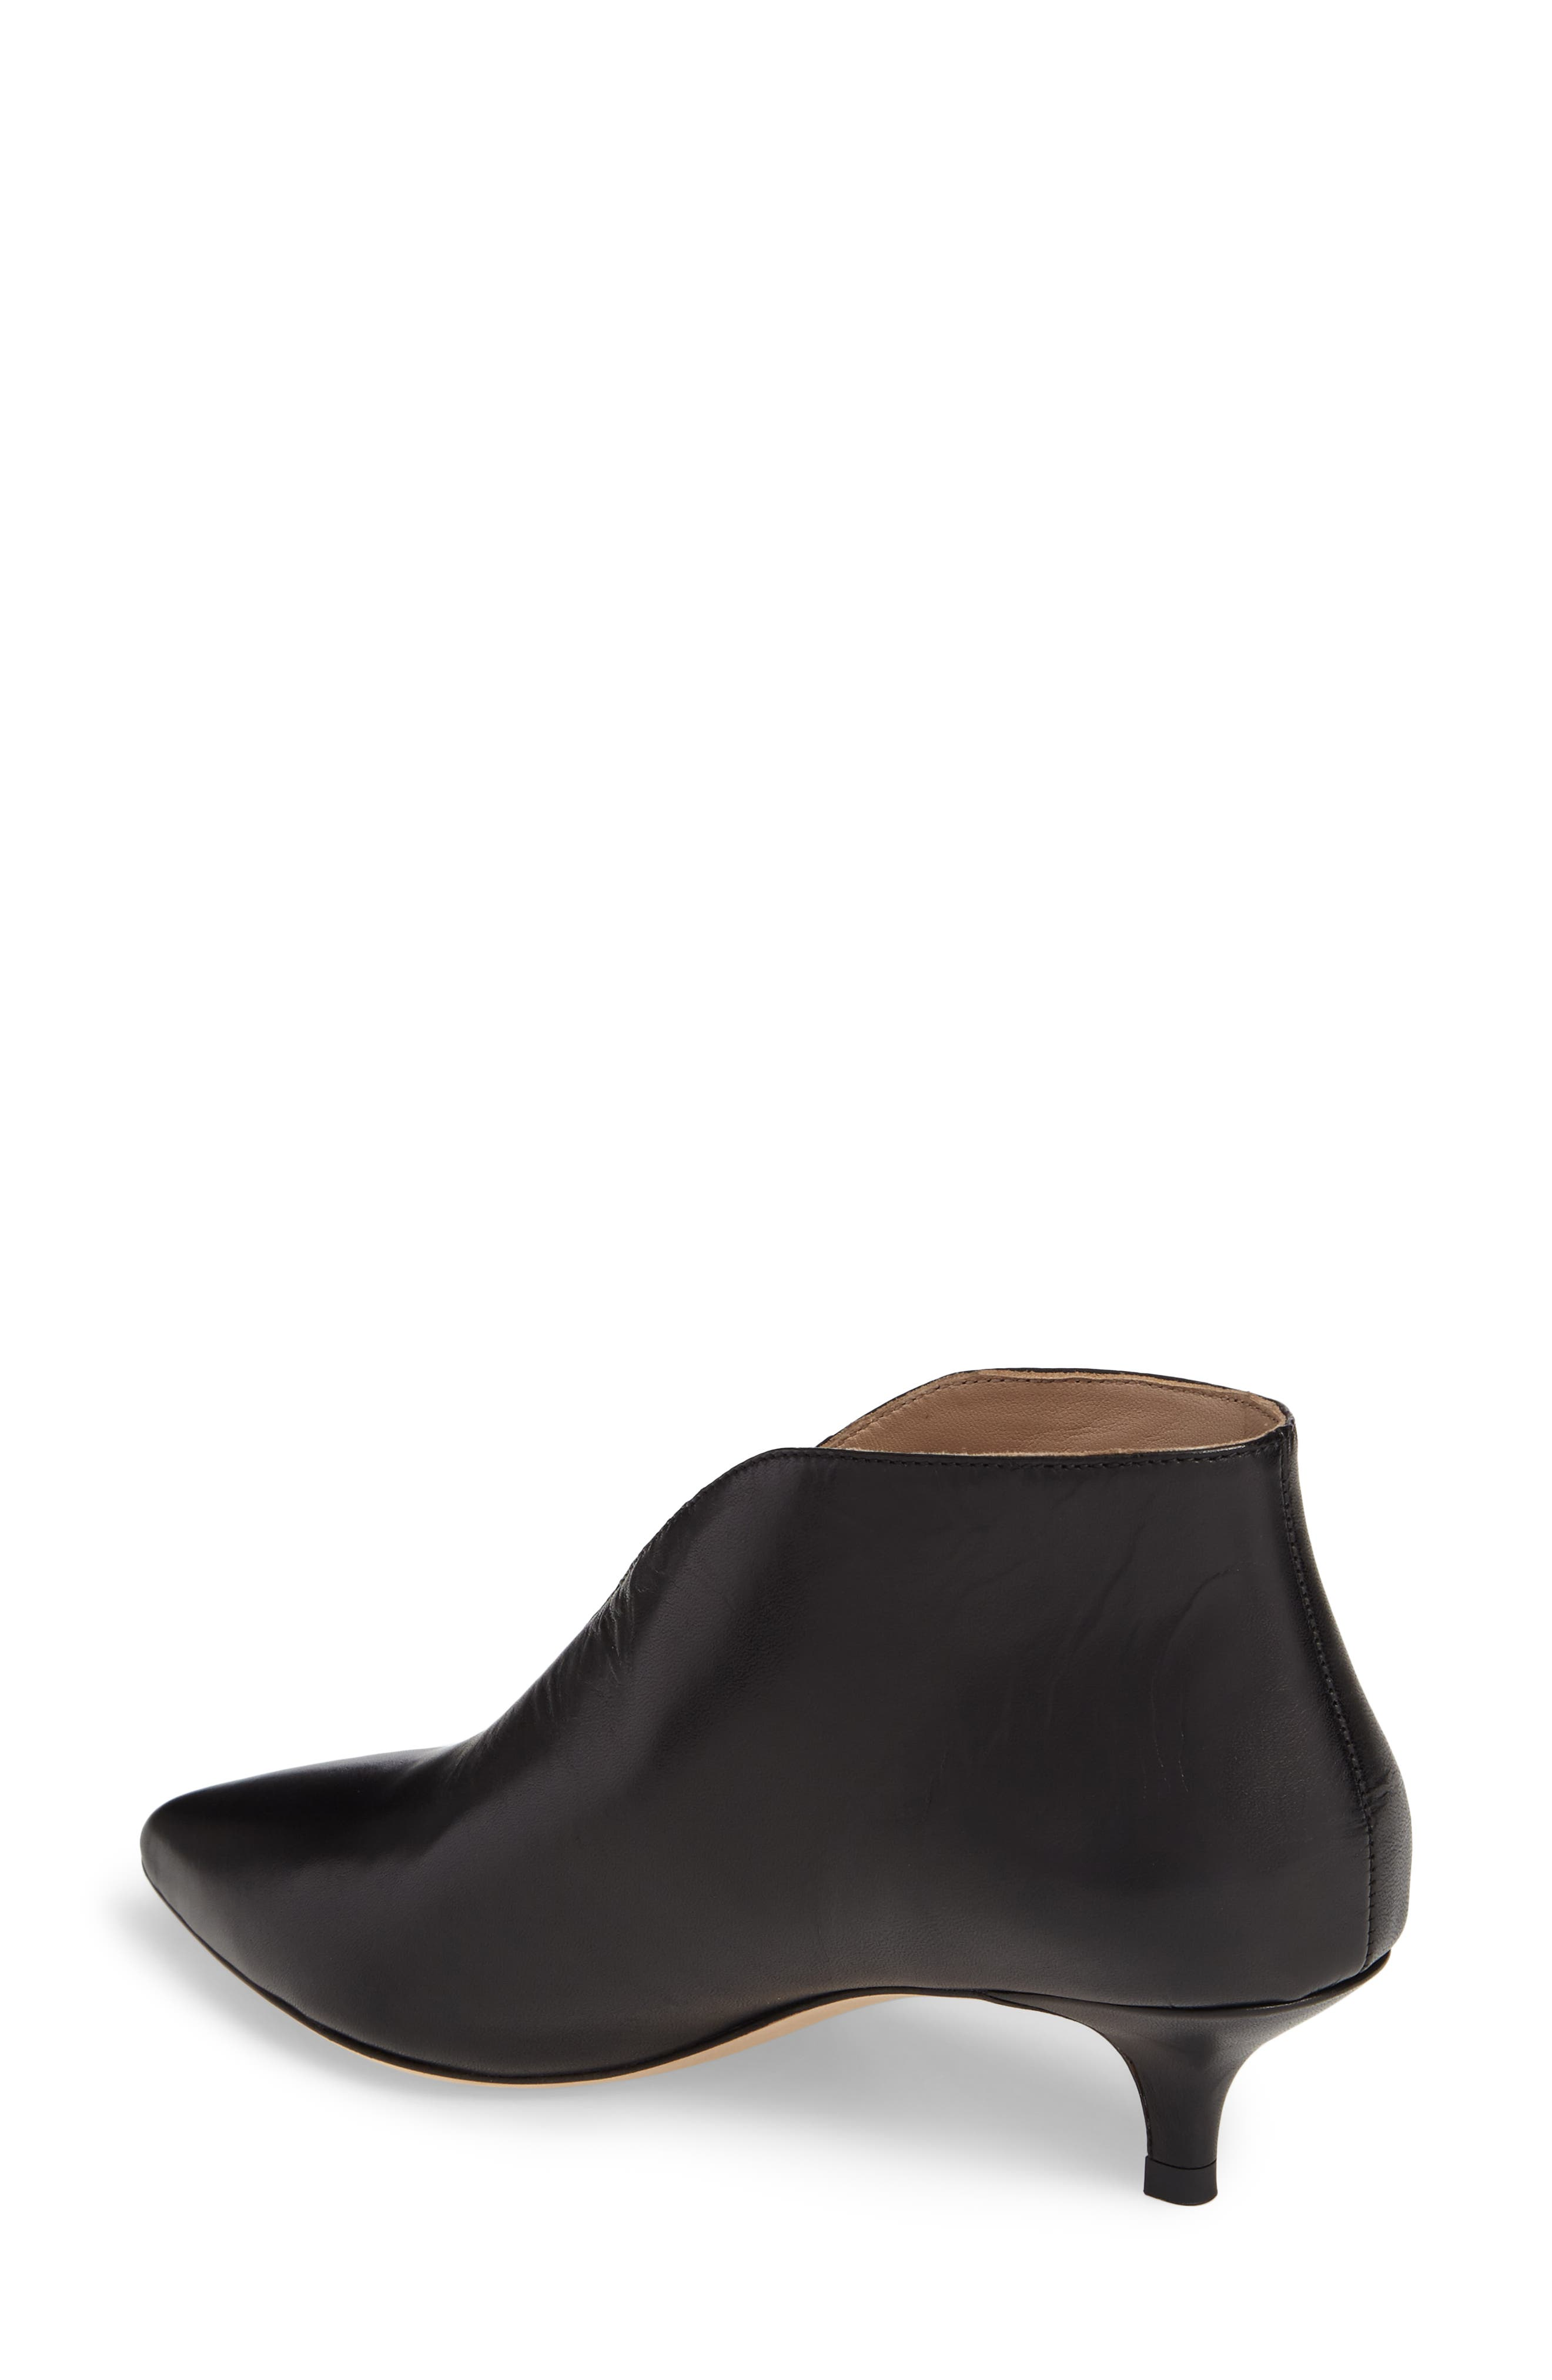 Kora Bootie,                             Alternate thumbnail 2, color,                             001